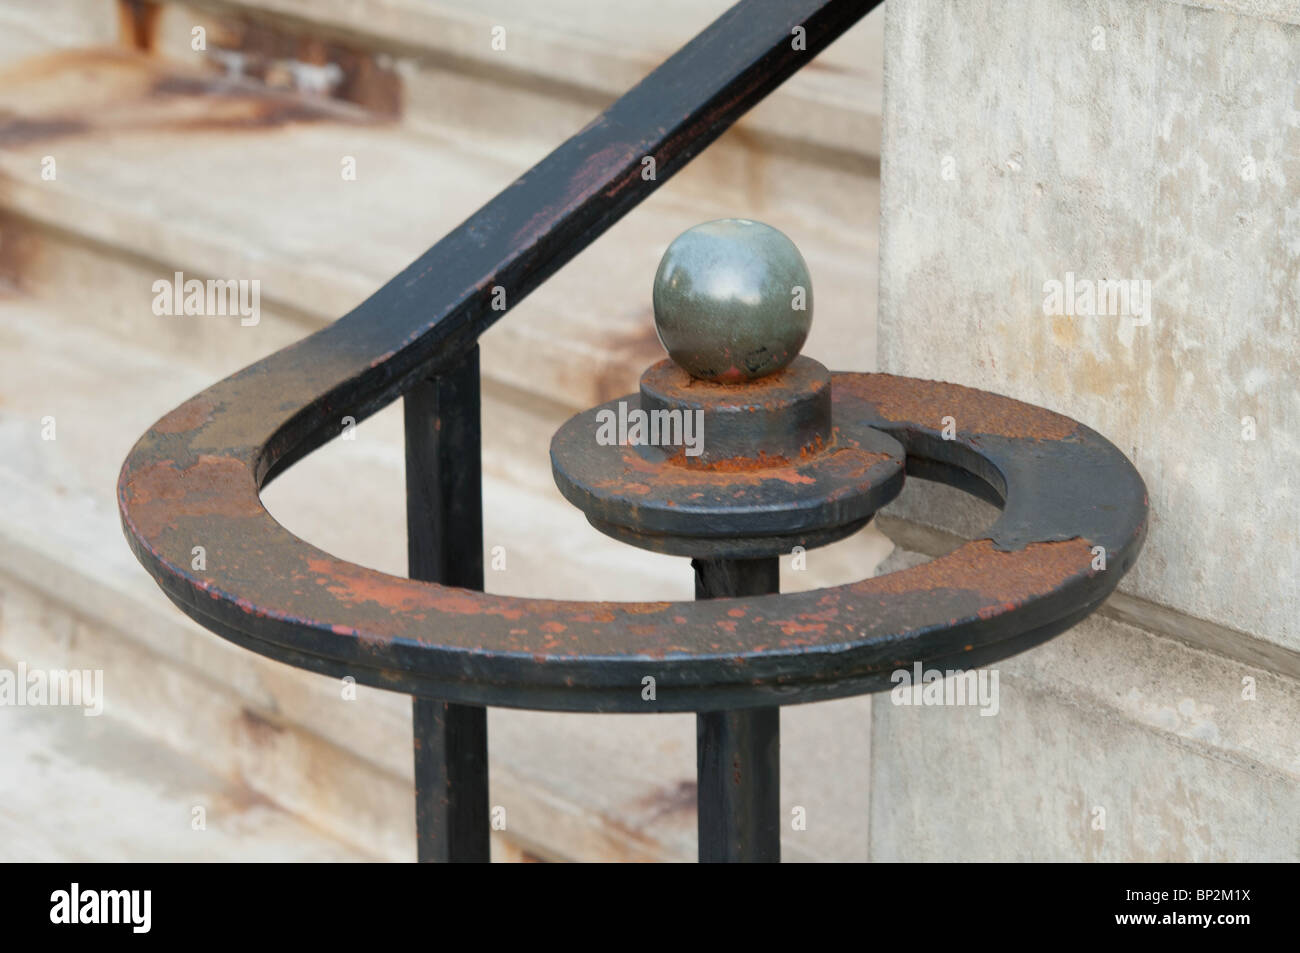 A rusty but usable wrought iron handrail provides a functional architectural detail. - Stock Image